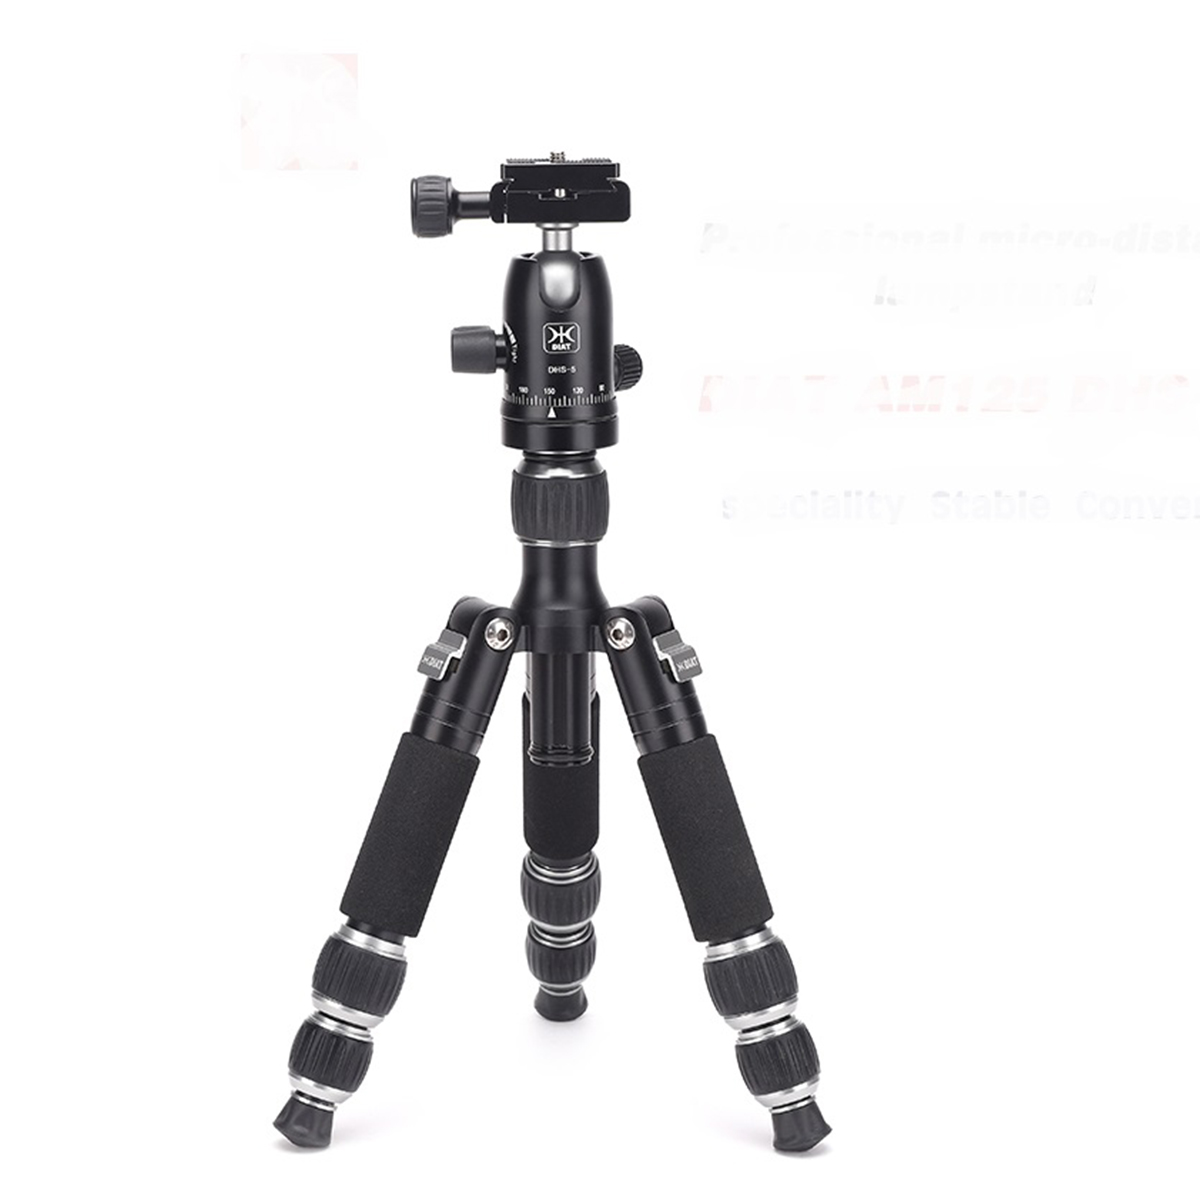 Diat Professional Tripod – AM125 Pro Video Diat